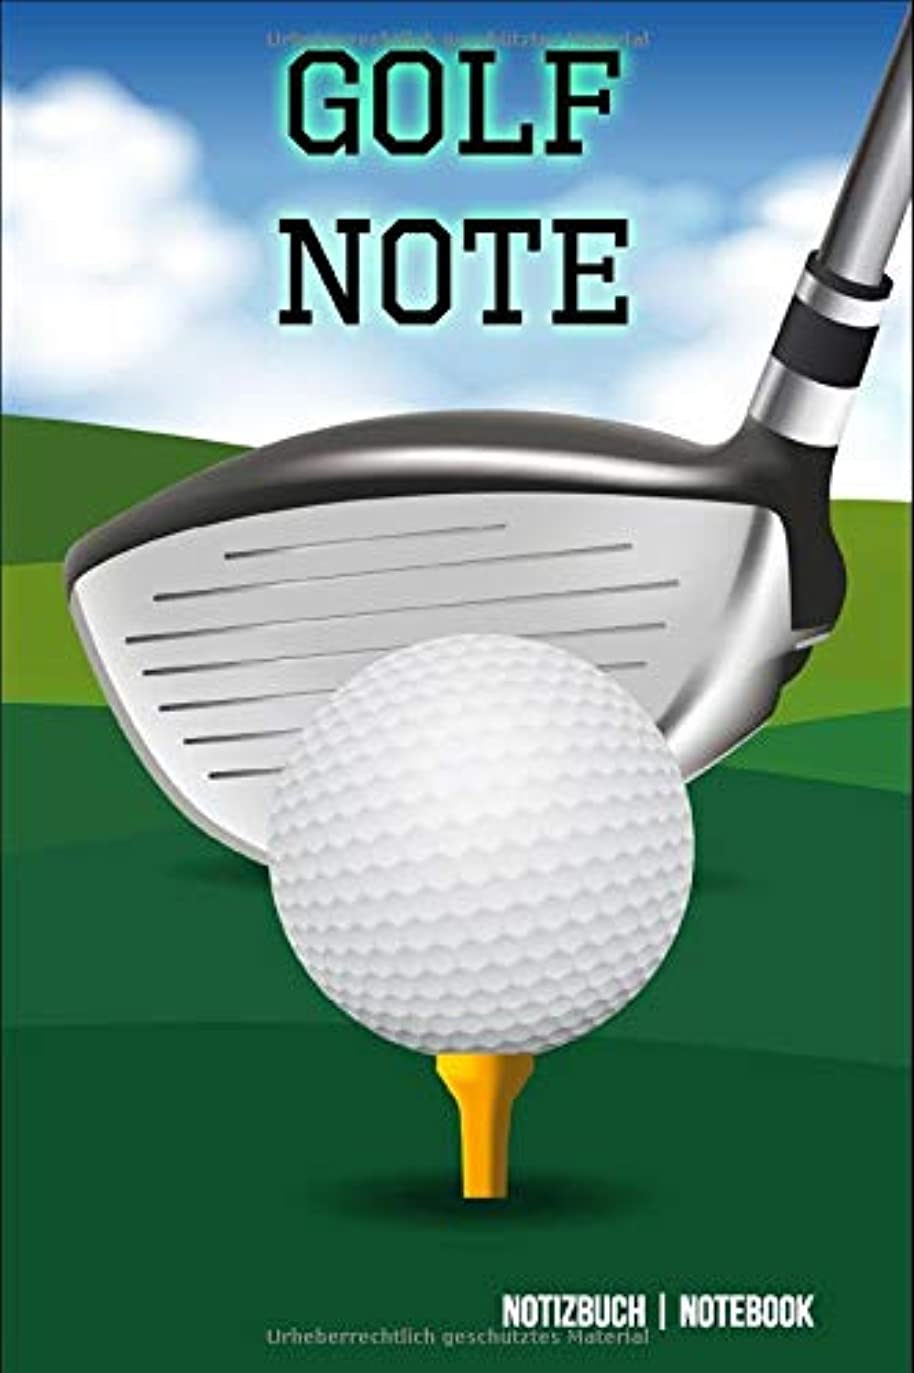 ライン道路を作るプロセス俳句Golf Note: Golf Training | Notebook | 110 Seiten | Golf Notizbuch 6 x 9